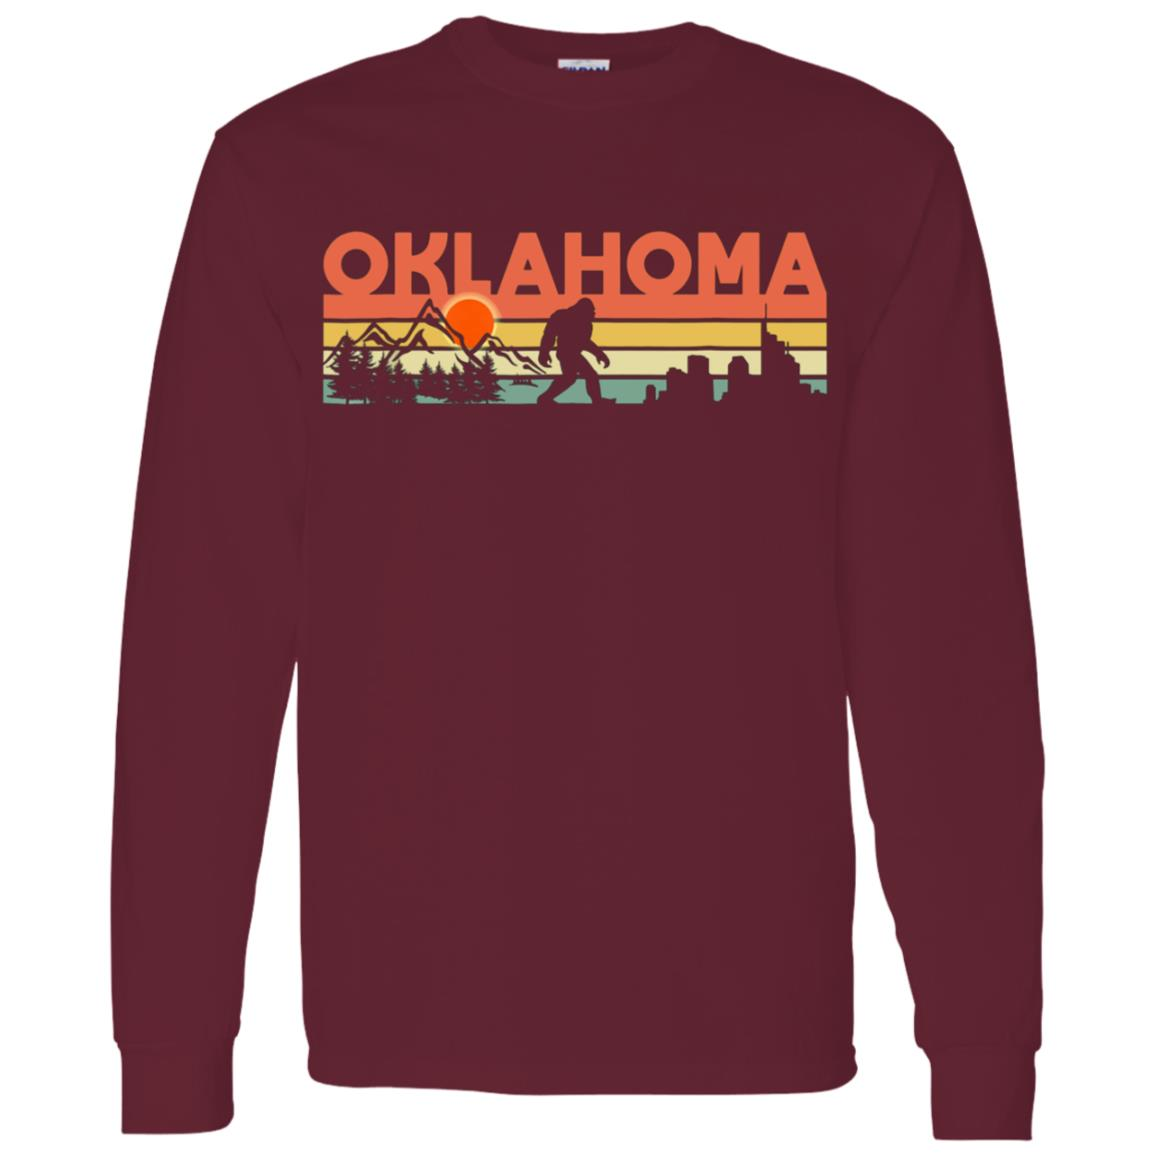 Vintage Oklahoma Bigfoot Silhouette Sun – Believe! Men Long Sleeve T-Shirt